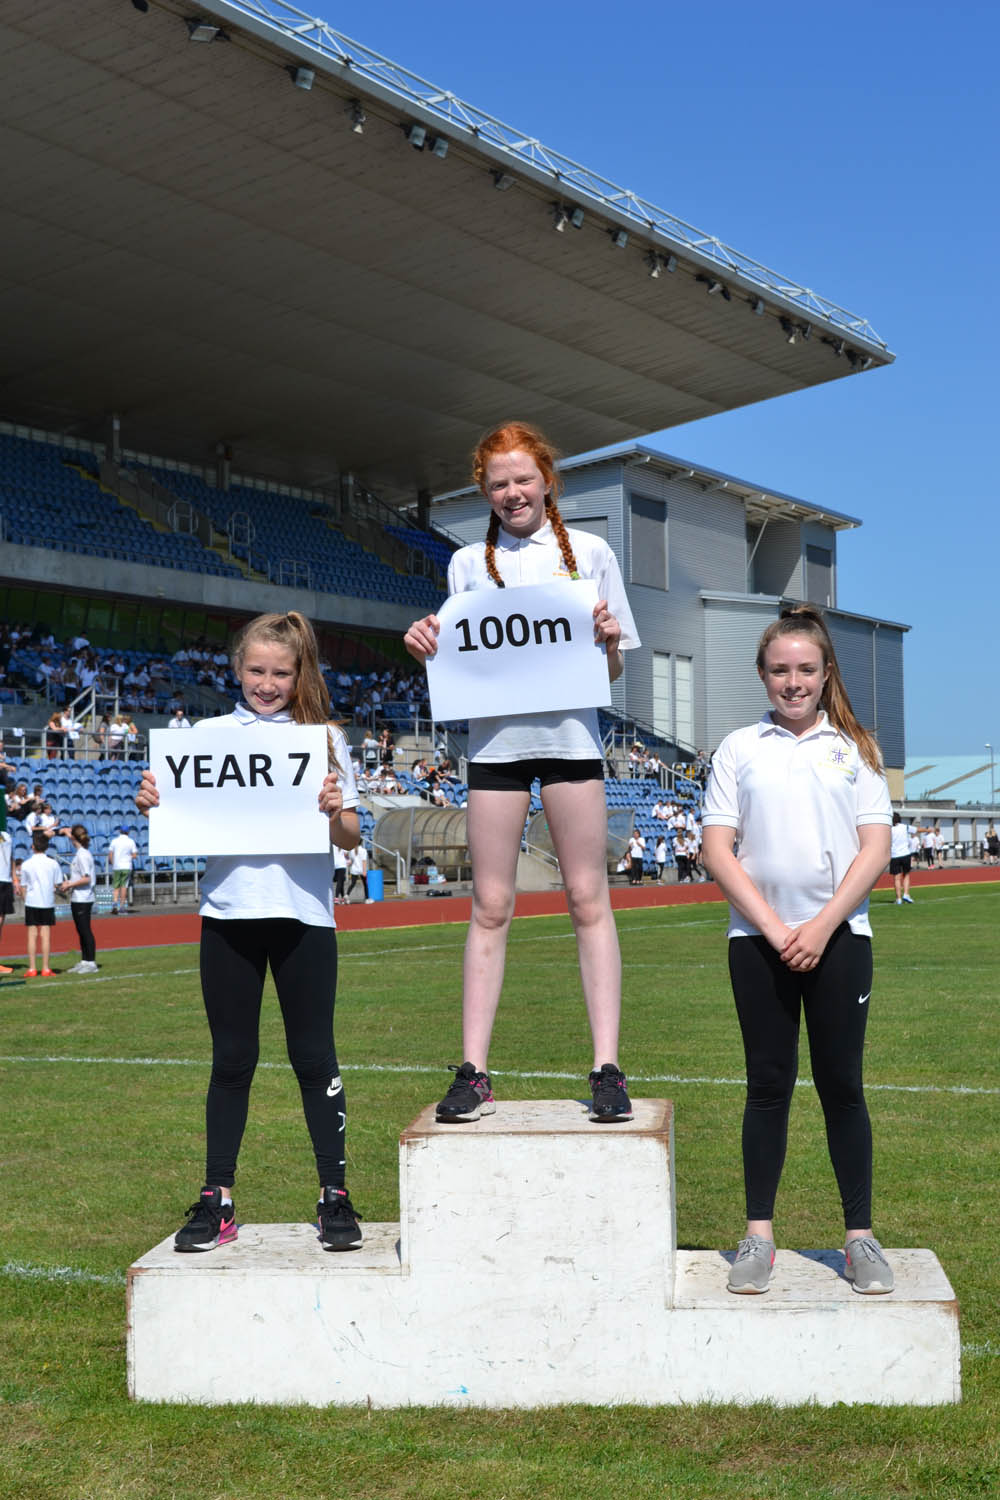 Year 7 Girls 100m